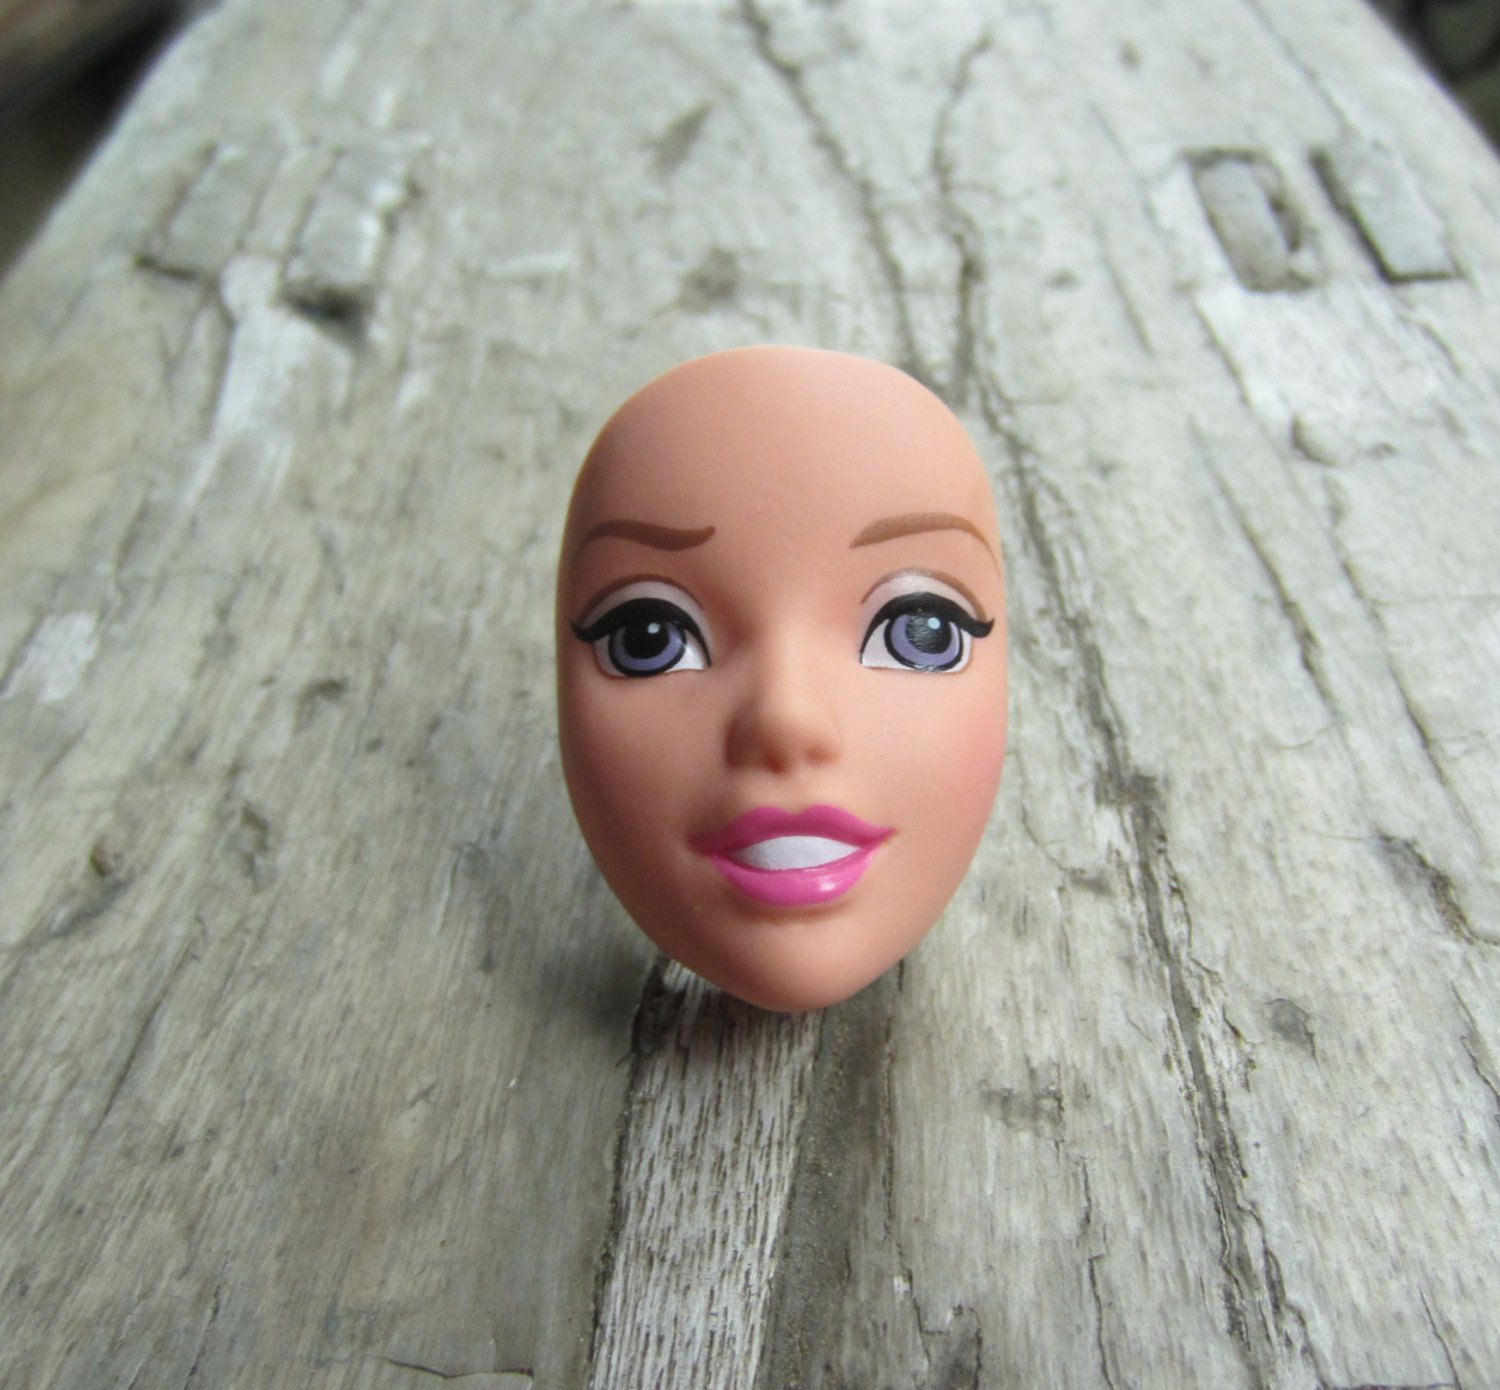 The new big trend is wearing Barbie's decapitated head on your fingers Credit: Etsy